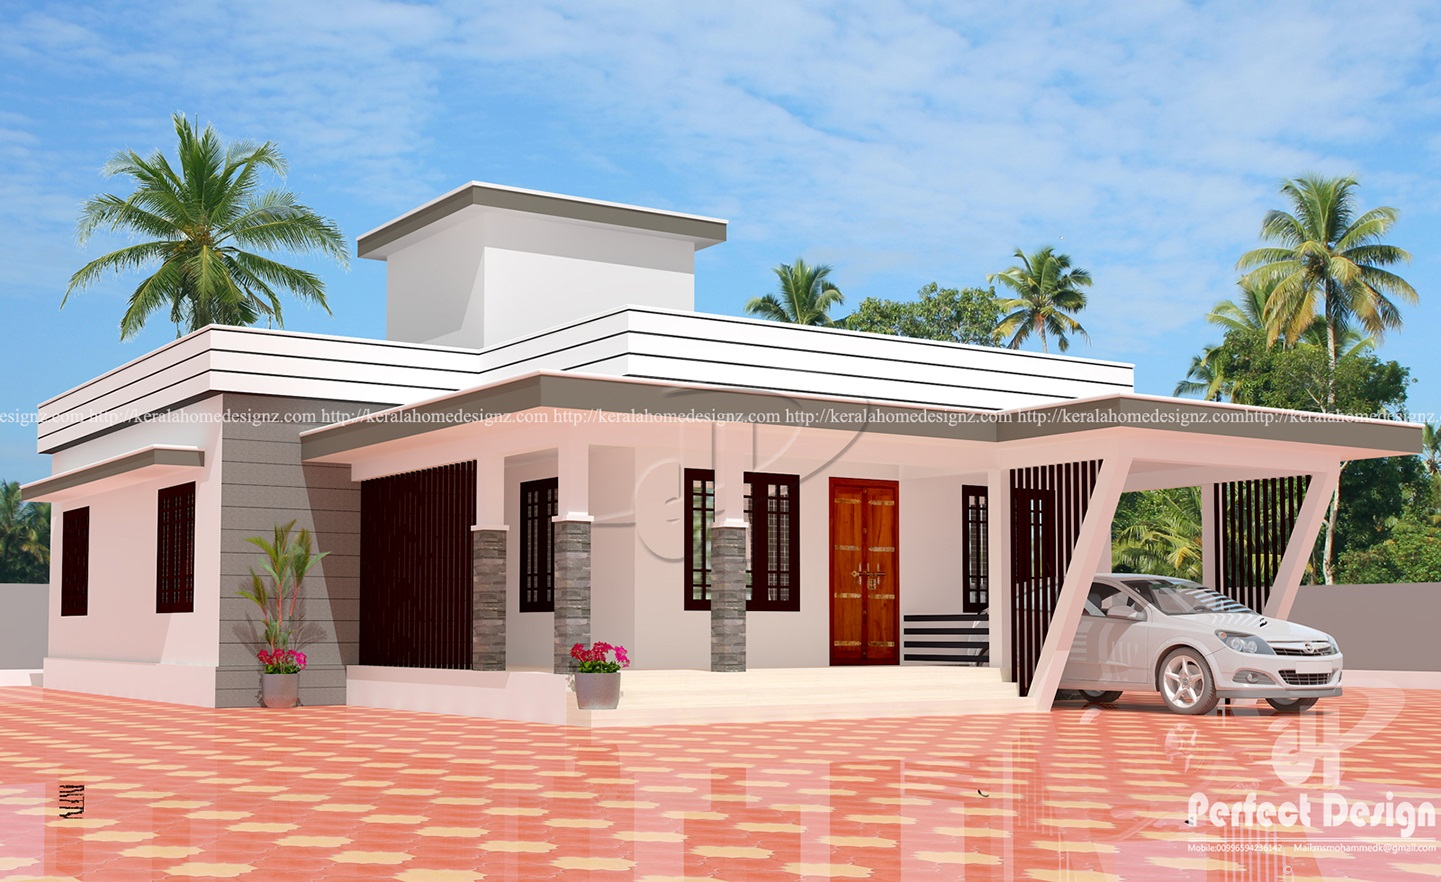 3 bedroom modern flat roof house layout kerala home design Contemporary flat roof designs